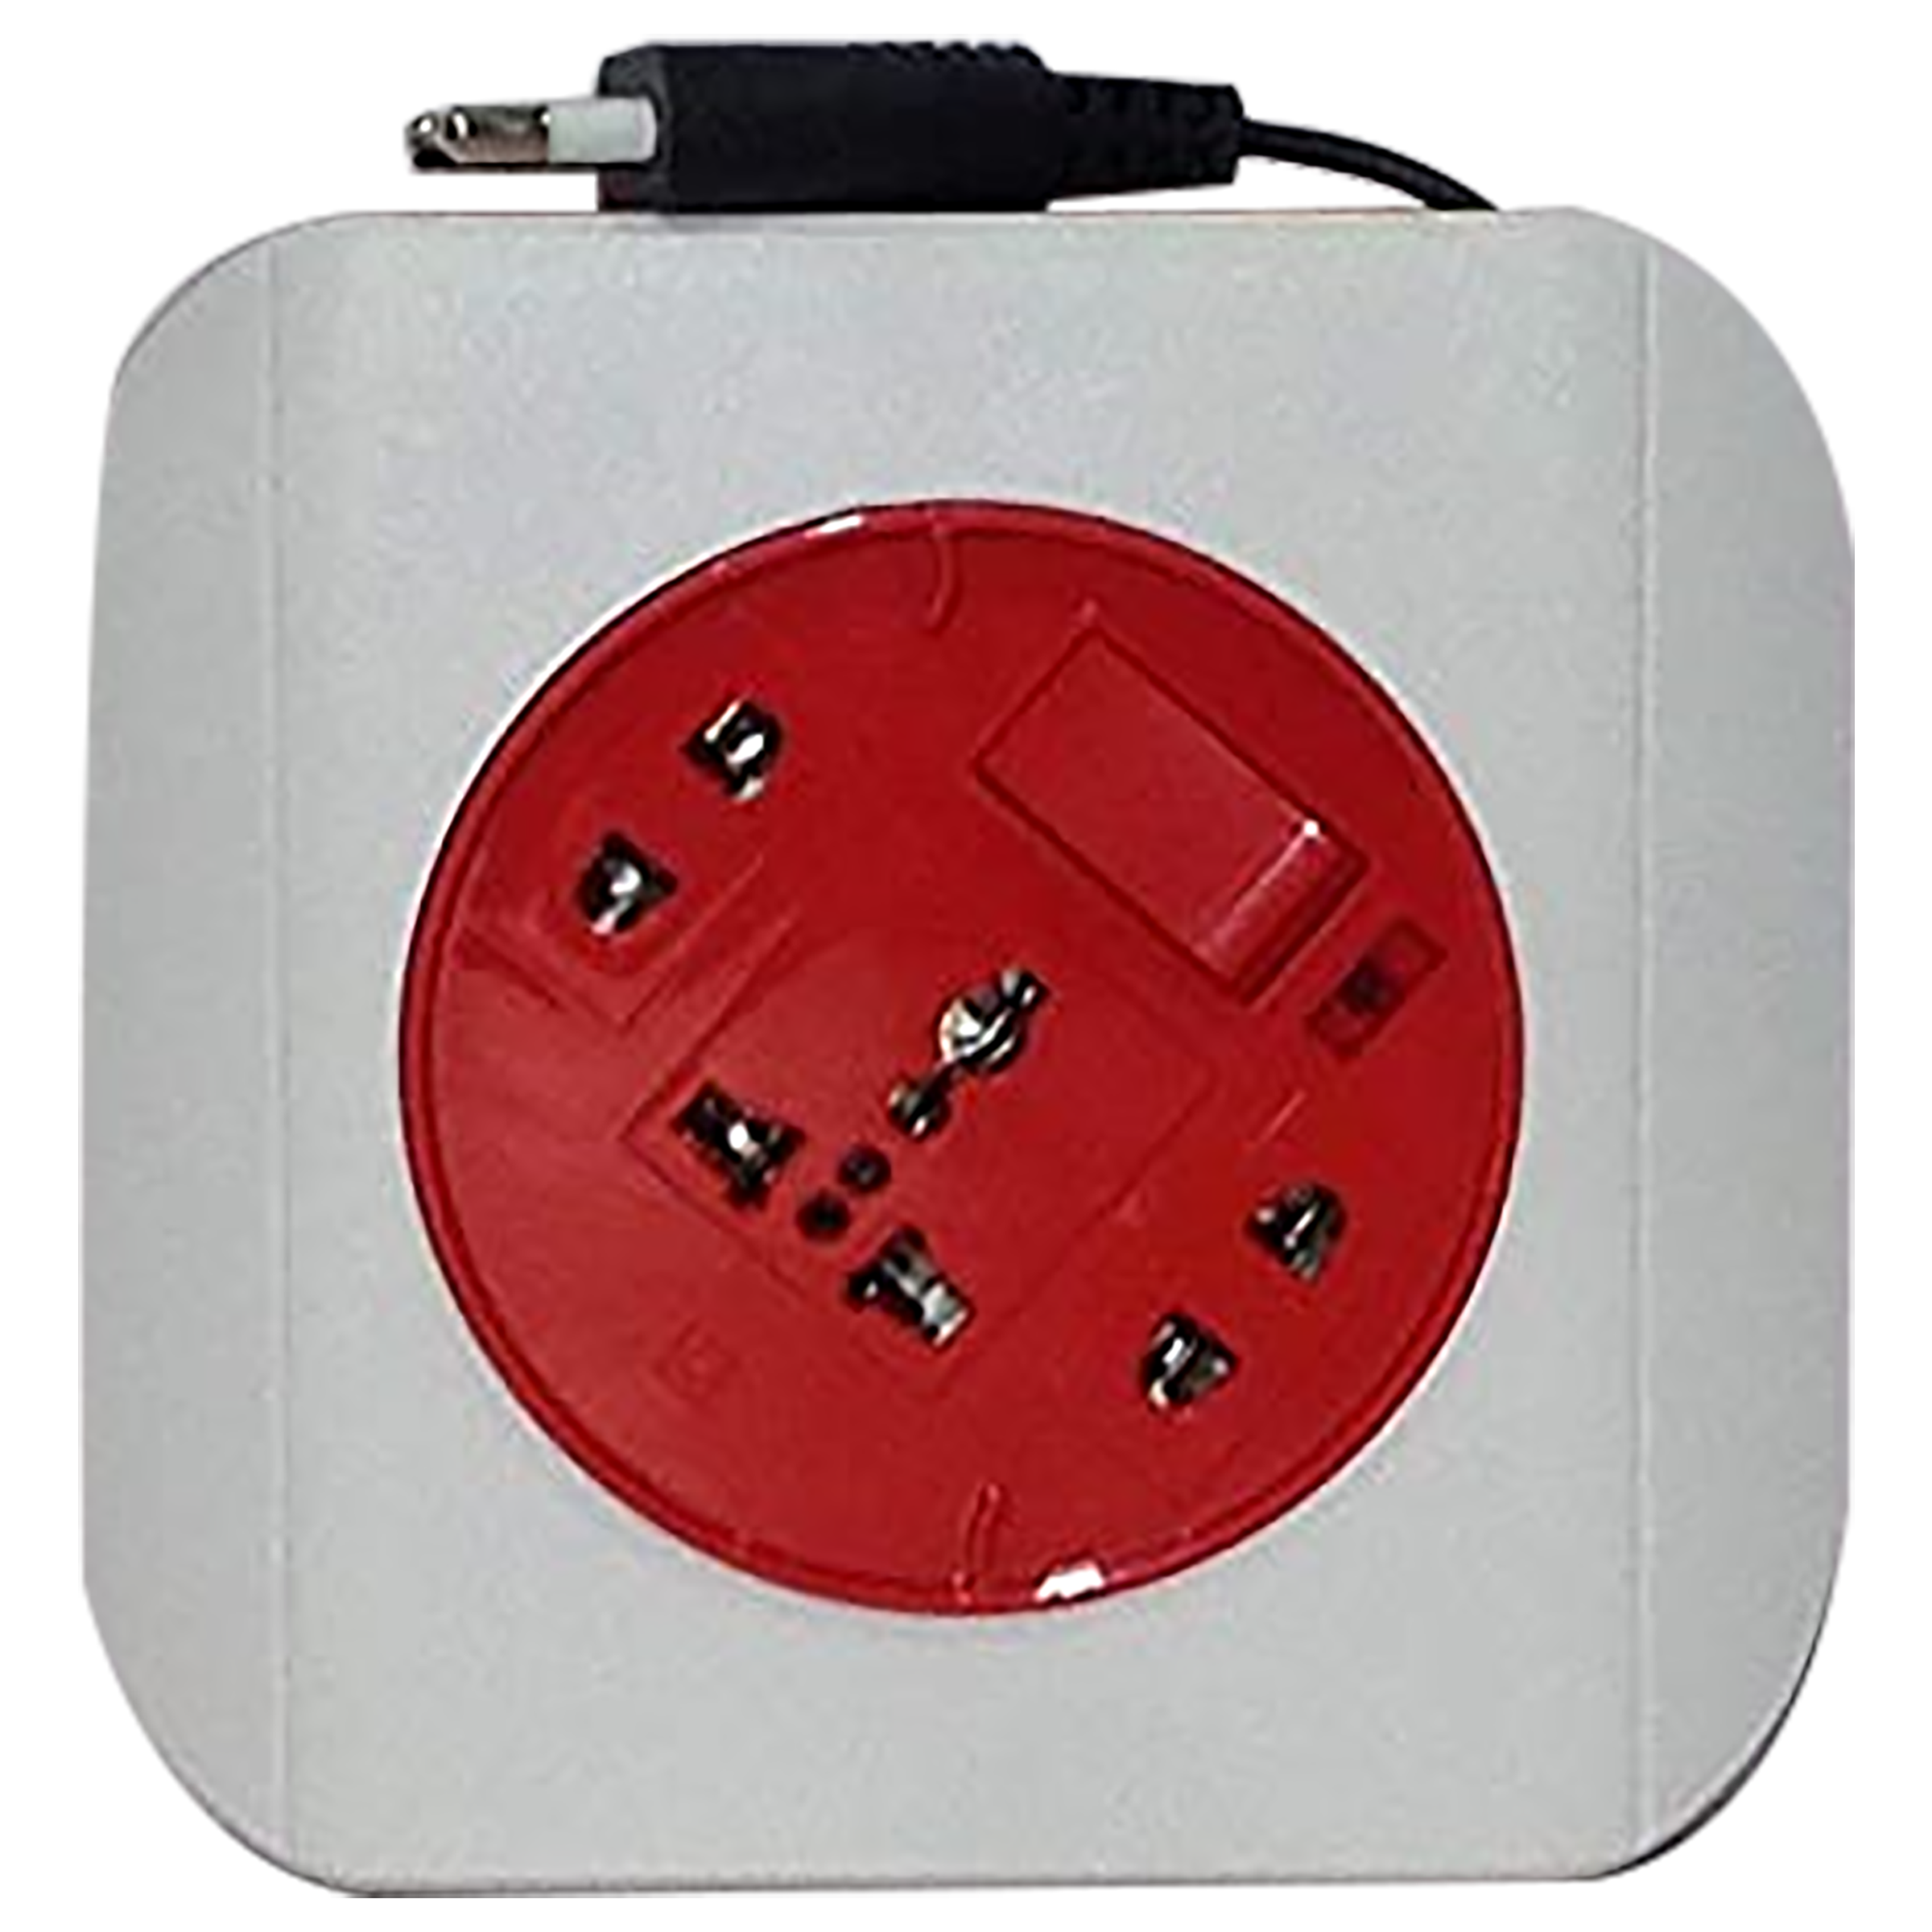 Goldmedal Dazzle 6 Amp 3 Sockets Extension Board 5 Meters (High Grade Fire Retardant Plastic, 205120, White/Red)_1